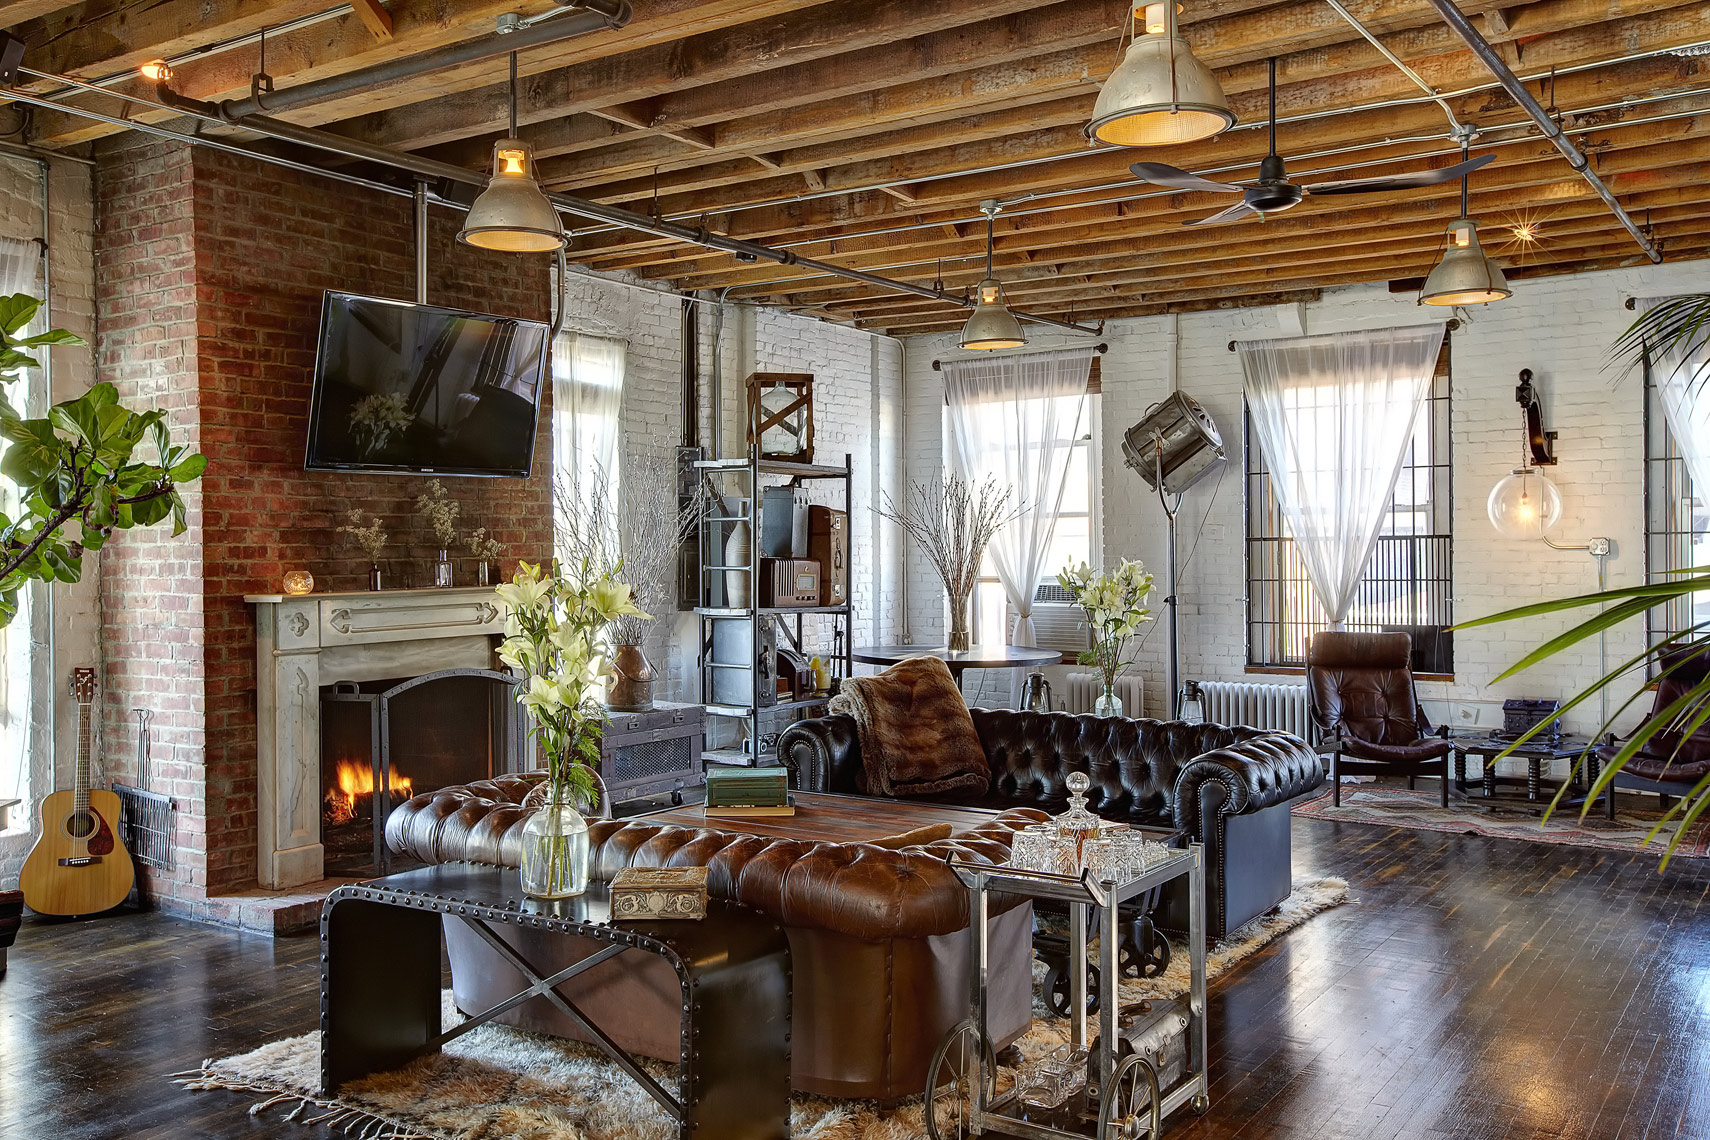 Amazing loft layout in the west village. Interior photographer.